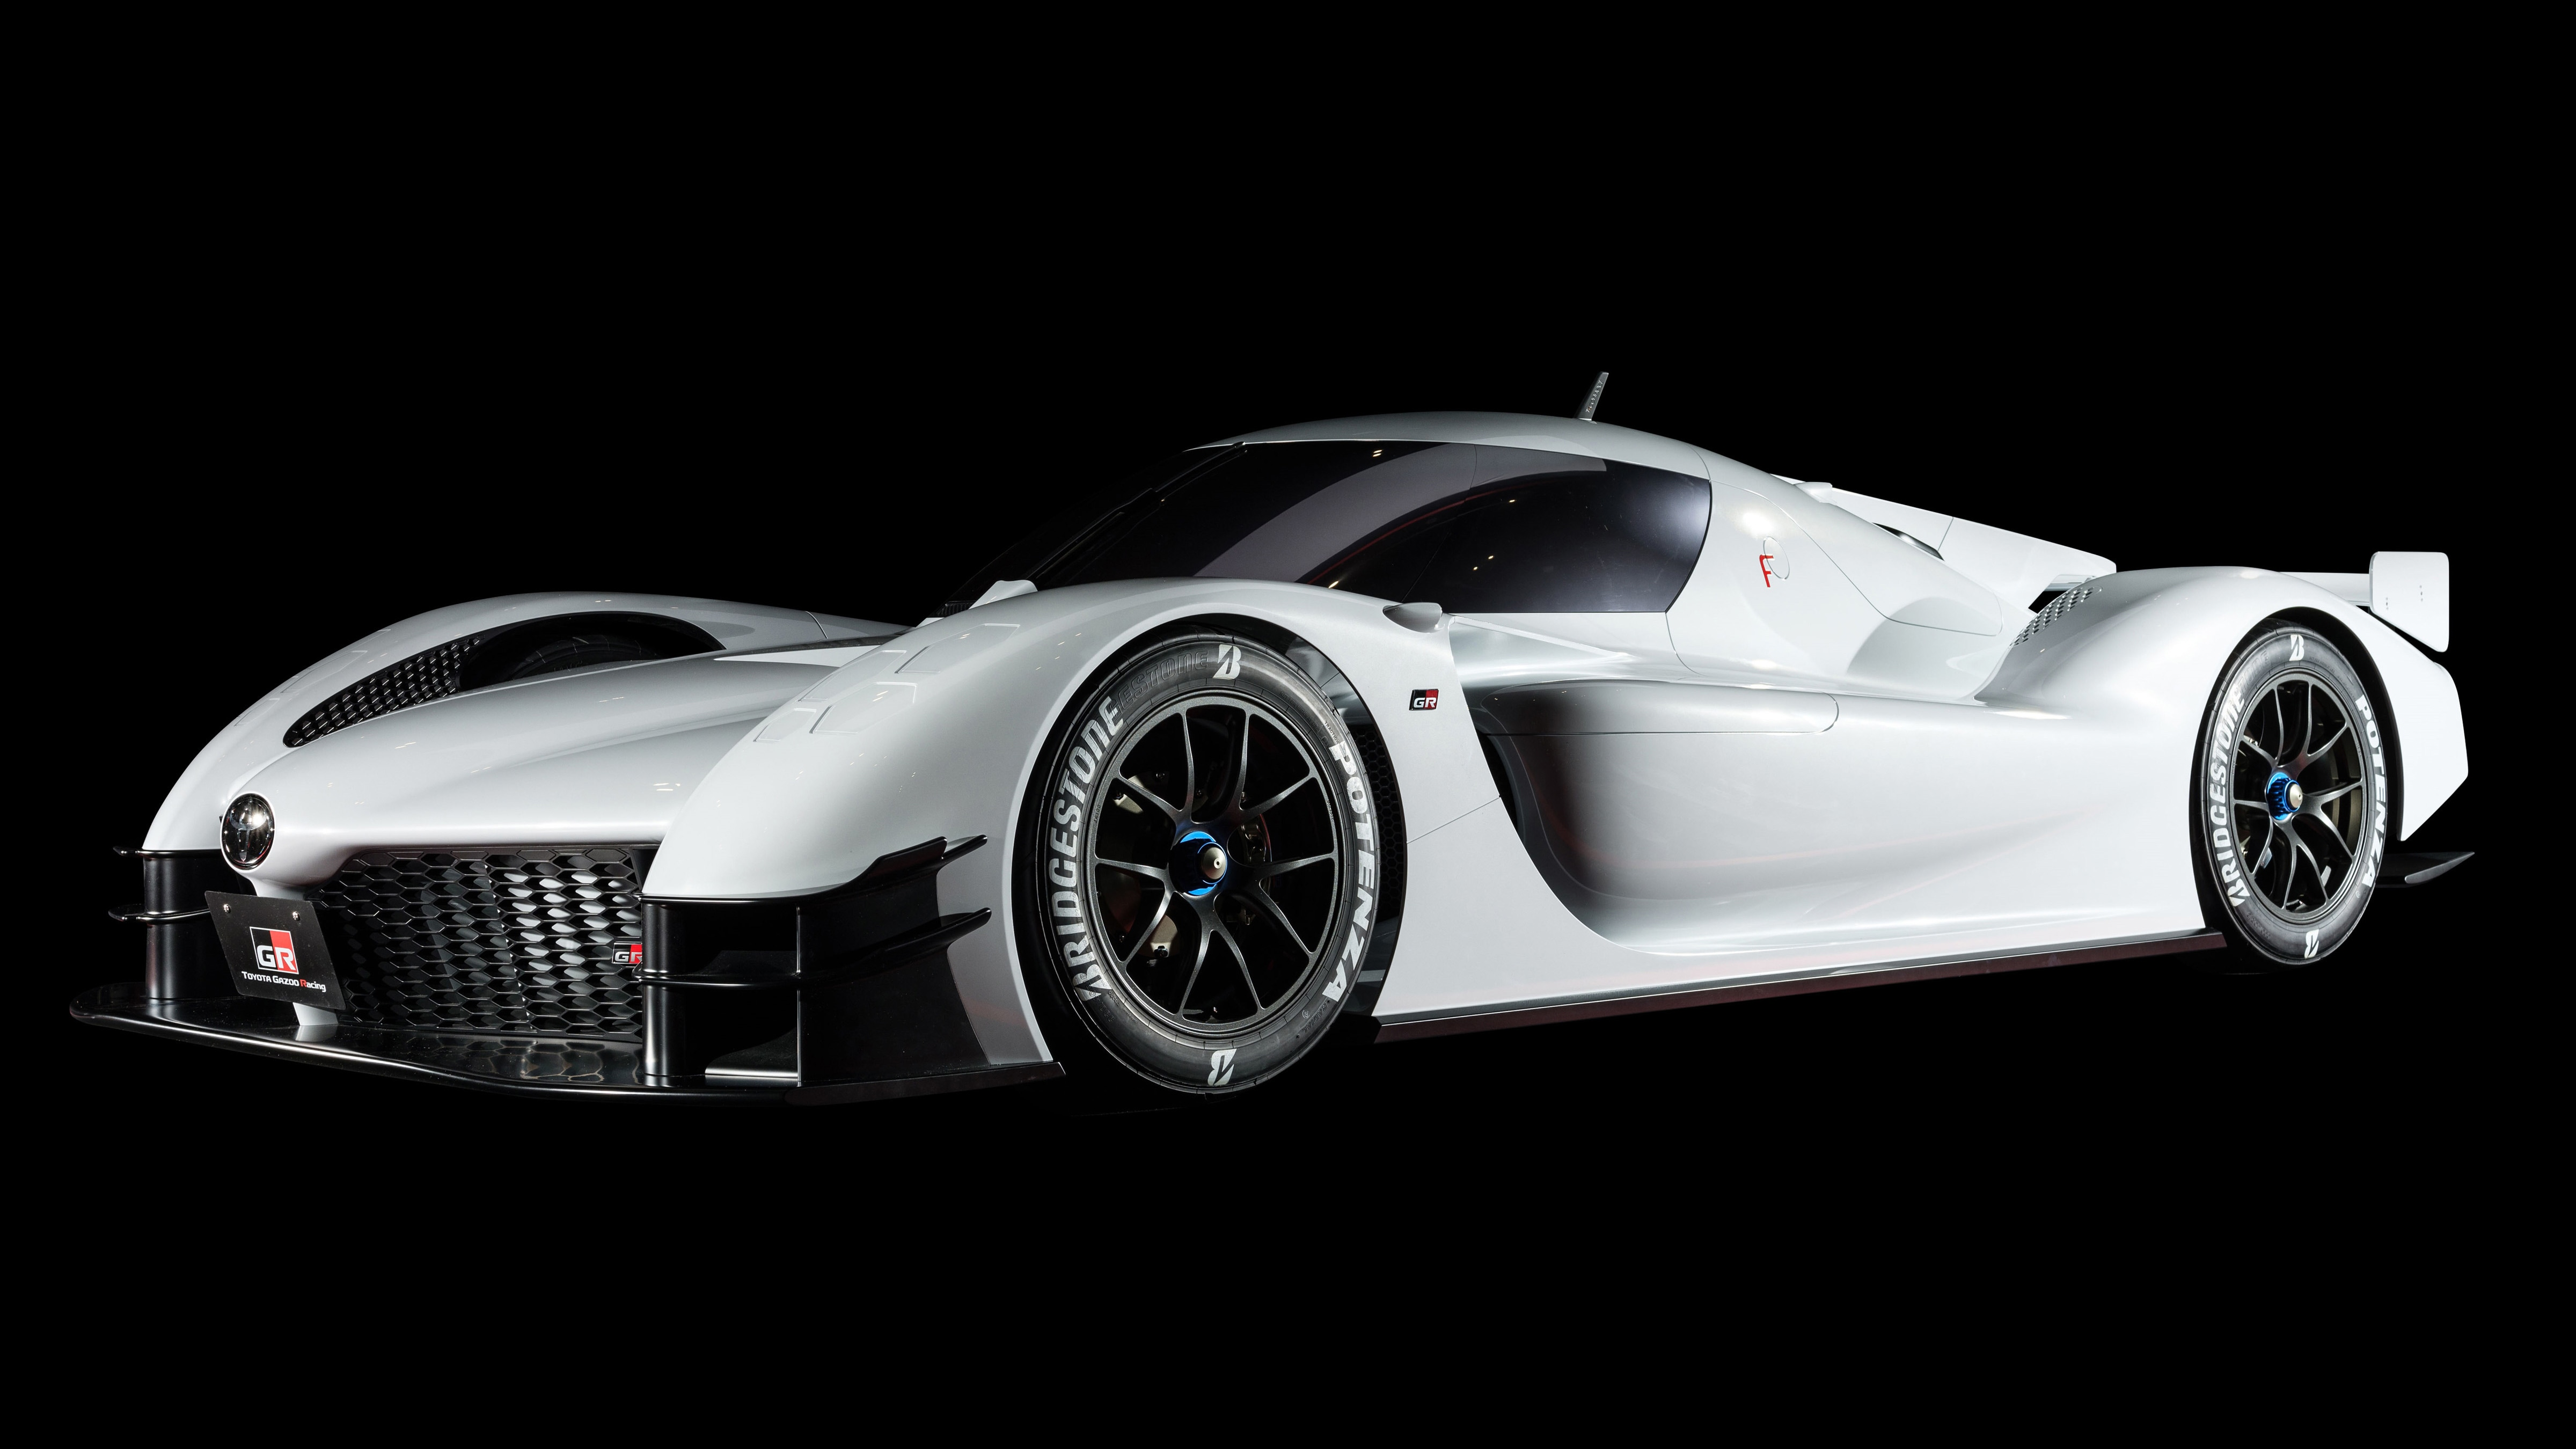 Toyota has Confirmed Development of a Road-going Hypercar 1